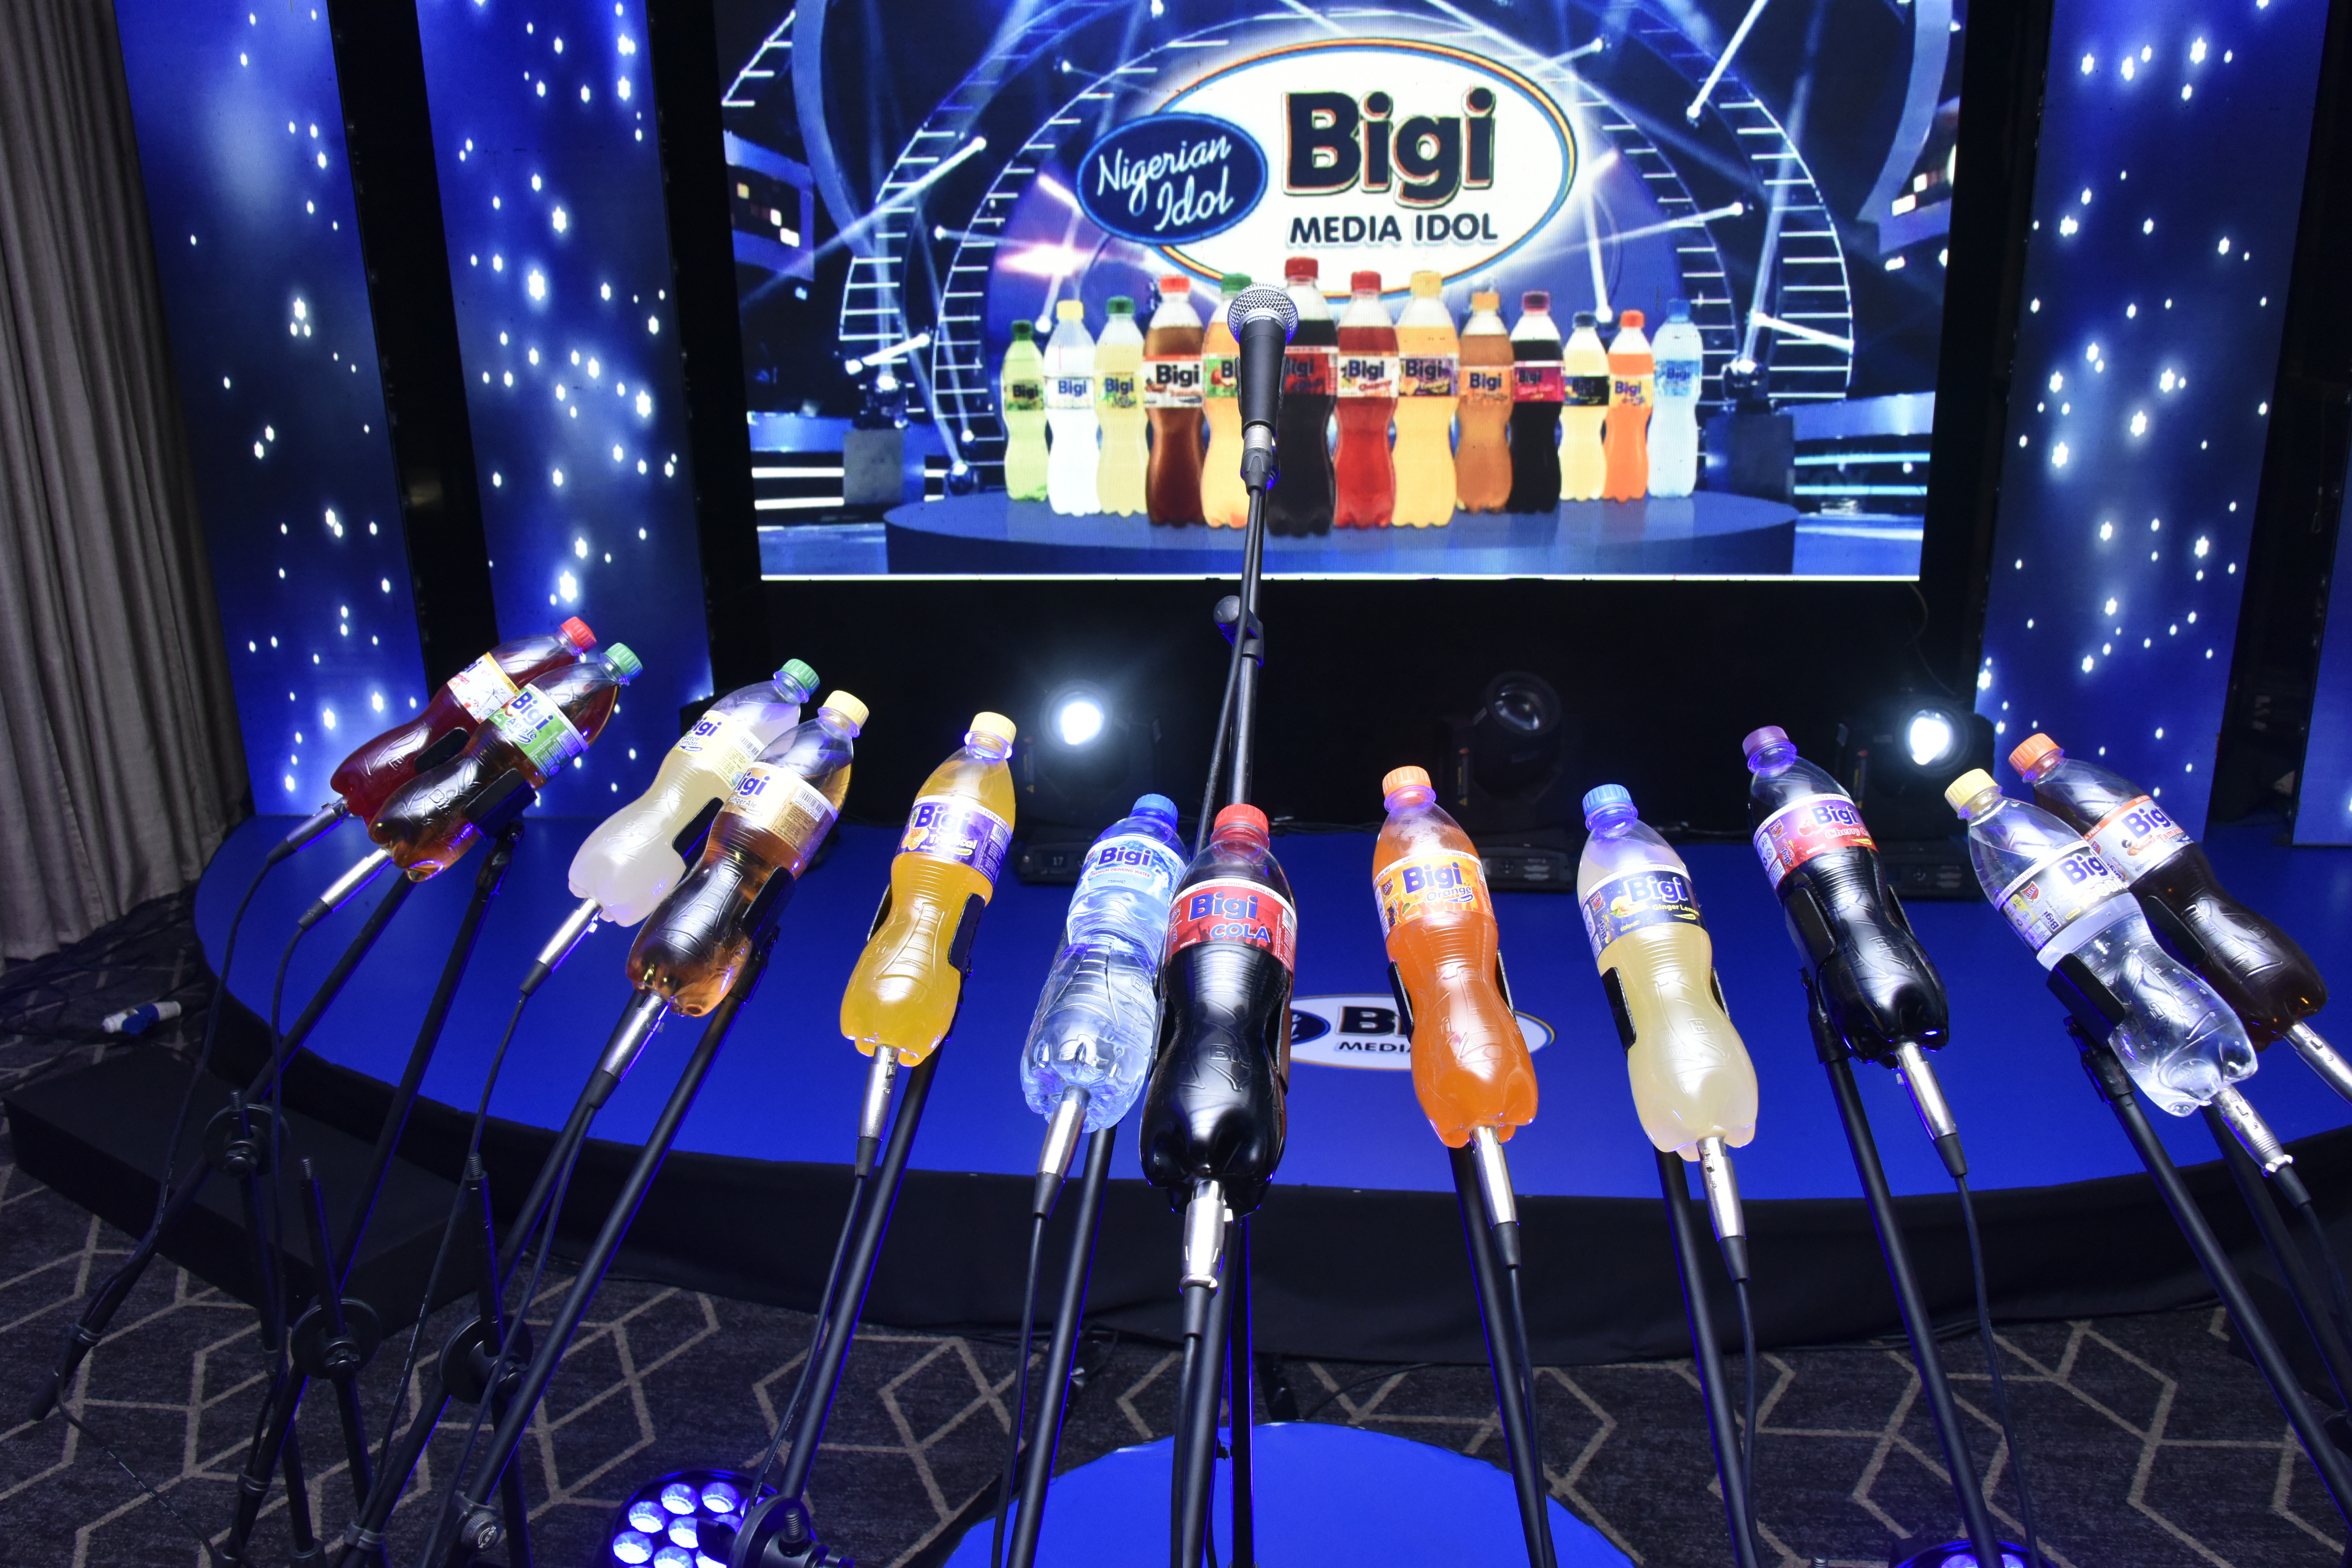 Bigi Dazzles Music Lovers, Takes Activation To Another Level By Turning Brand Variants To Microphones